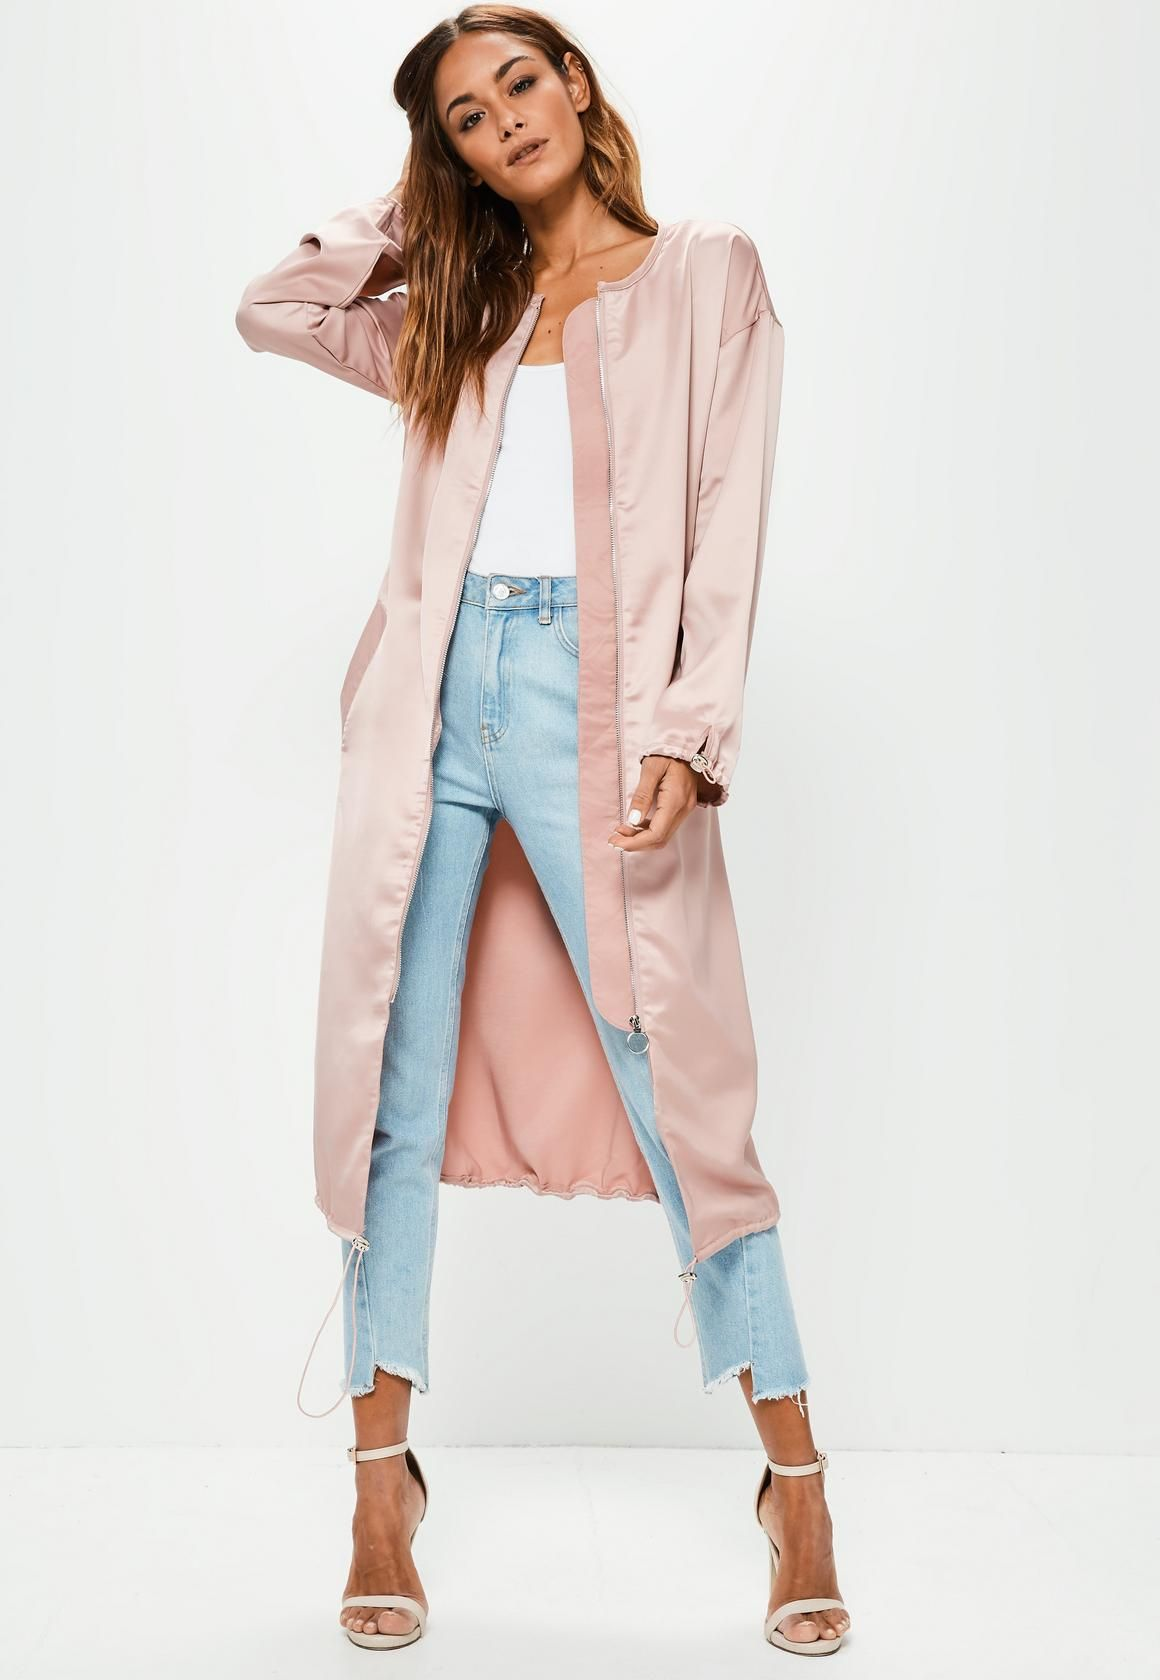 ac6789d8d Missguided - Pink Utility Silky Duster Coat | Style Me in 2019 ...